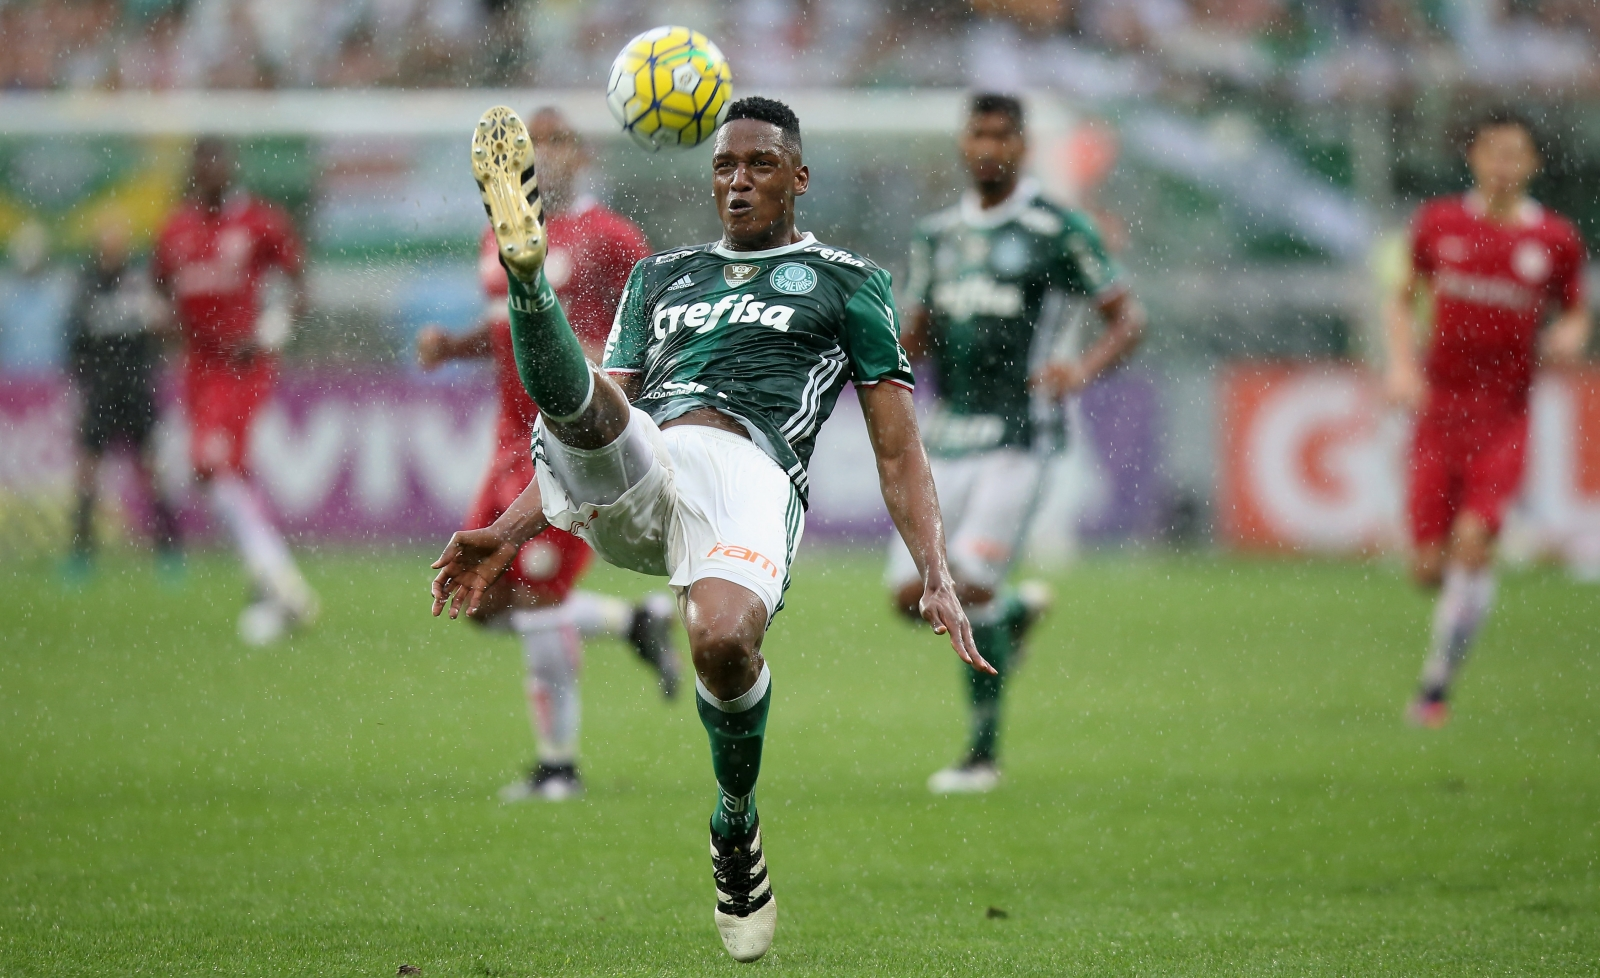 Palmeiras chief confirms yerry minas interest in joining barcelona are keen to move the deal for yerry mina forward getty stopboris Gallery